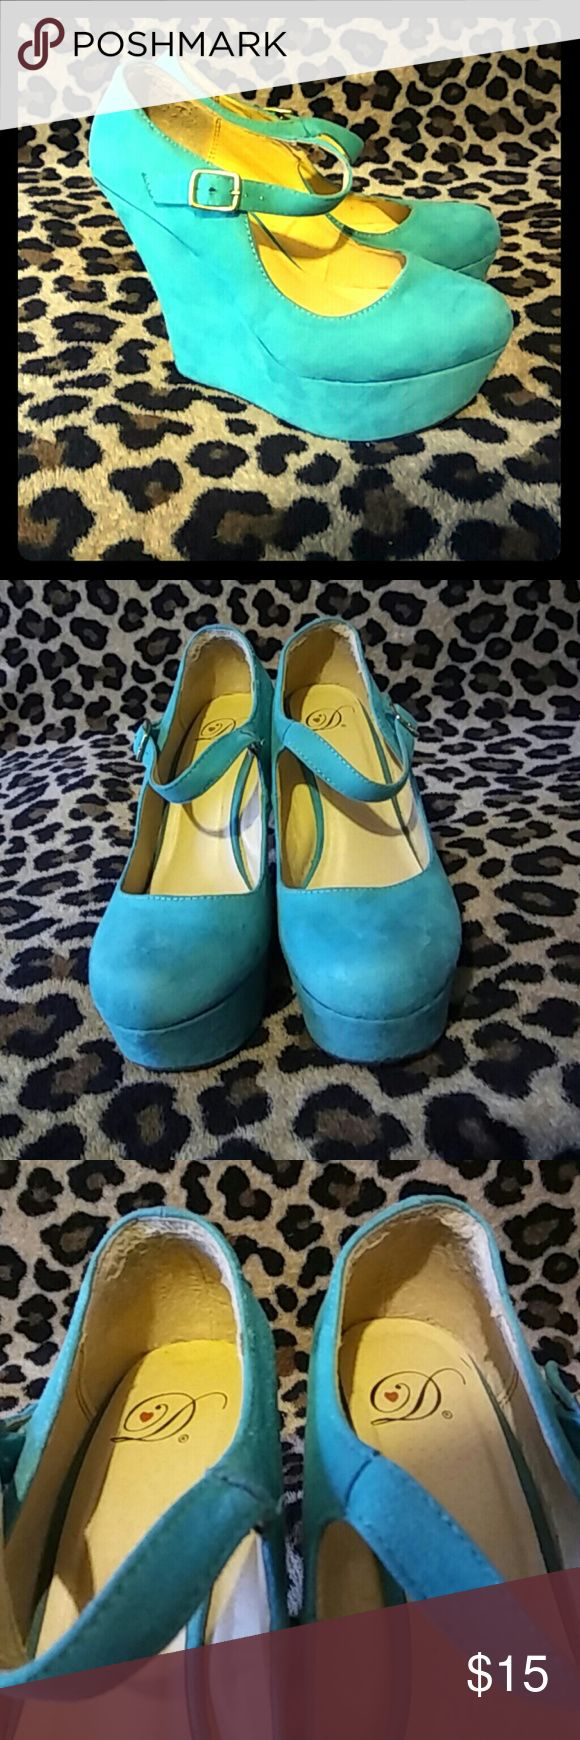 Blue Platform Wedges Good condition, D Heart brand platform wedges. They have some minor wear, as pictured. 5 inch wedge height. Shoes Wedges